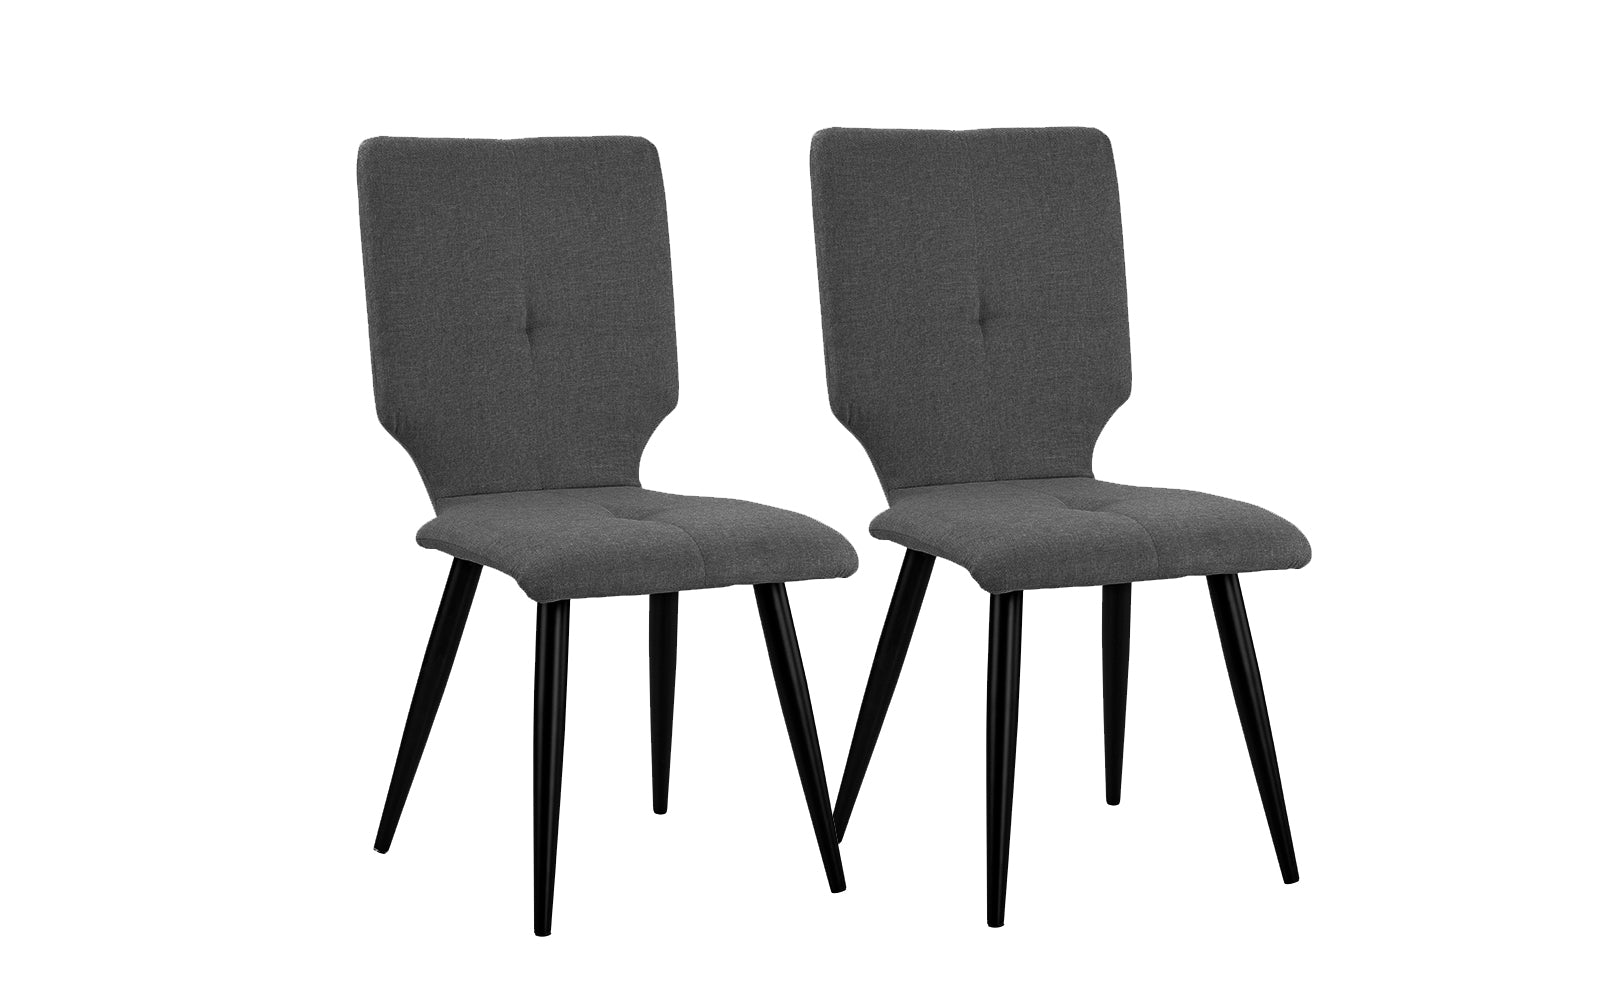 Ava set of 2 modern upholstered dining chairs for Upholstered dining chairs contemporary